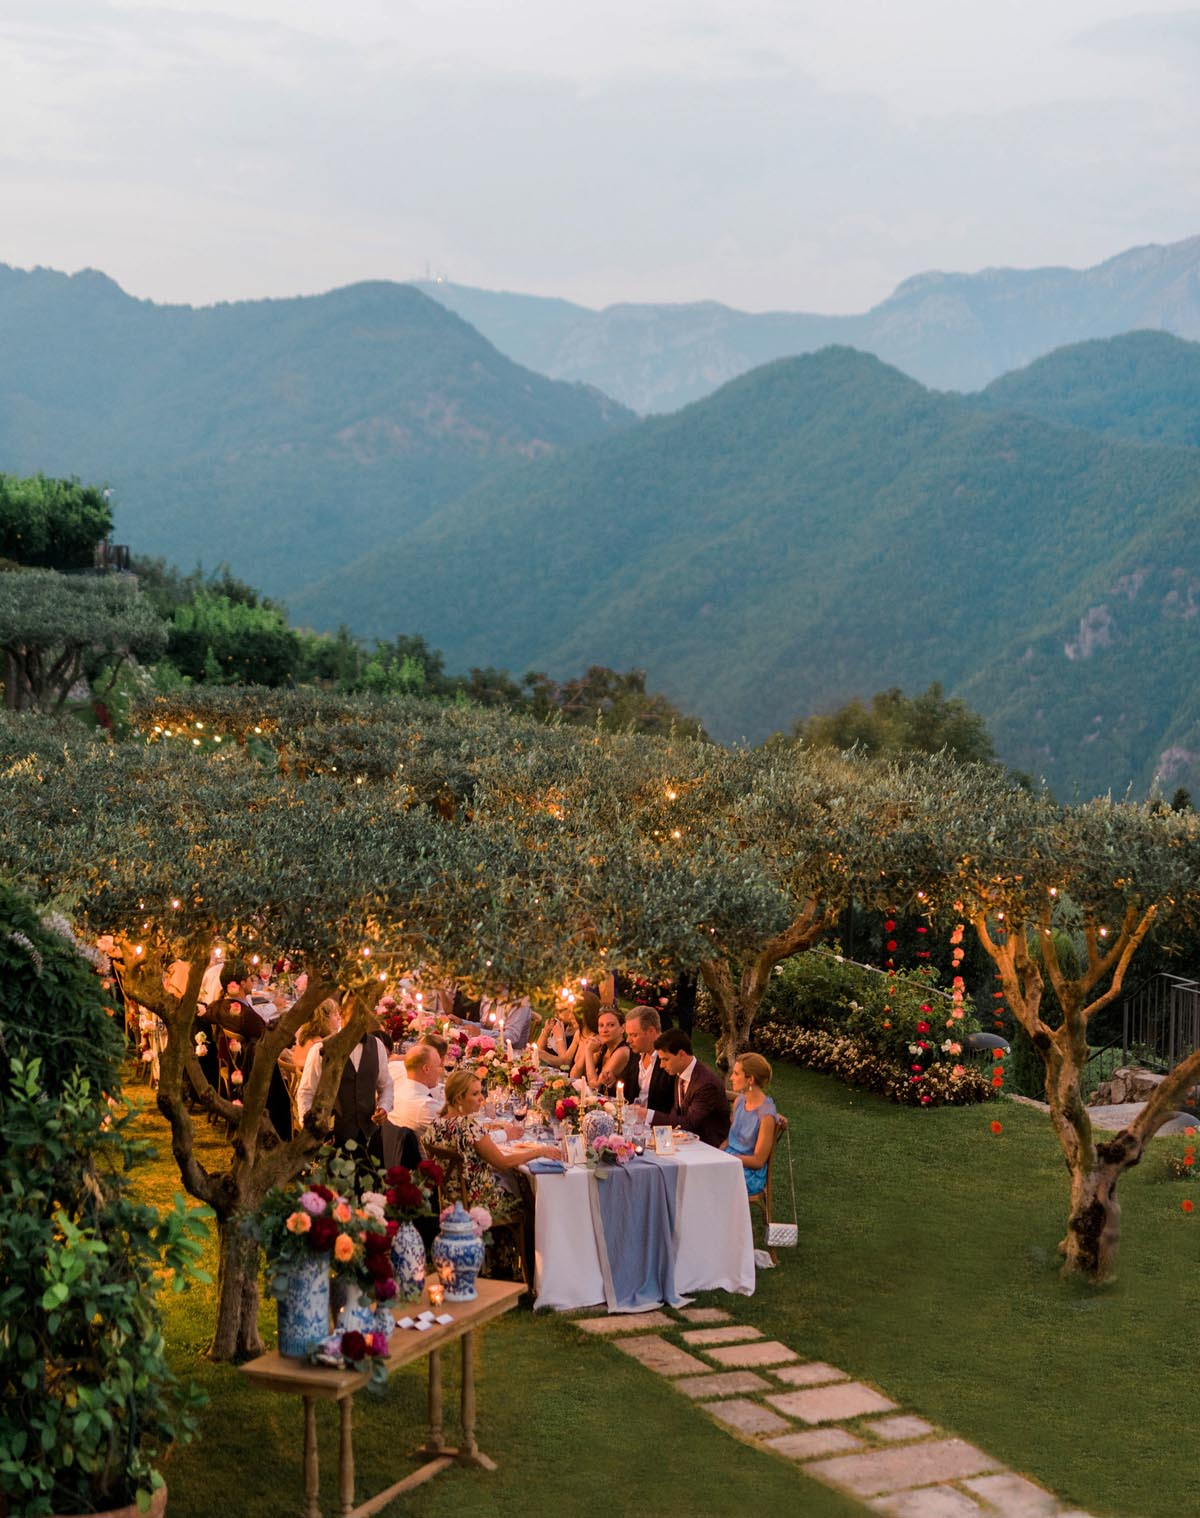 Italy-wedding-tablescape-with-mountains-and-hanging-flowers-and-string-lights